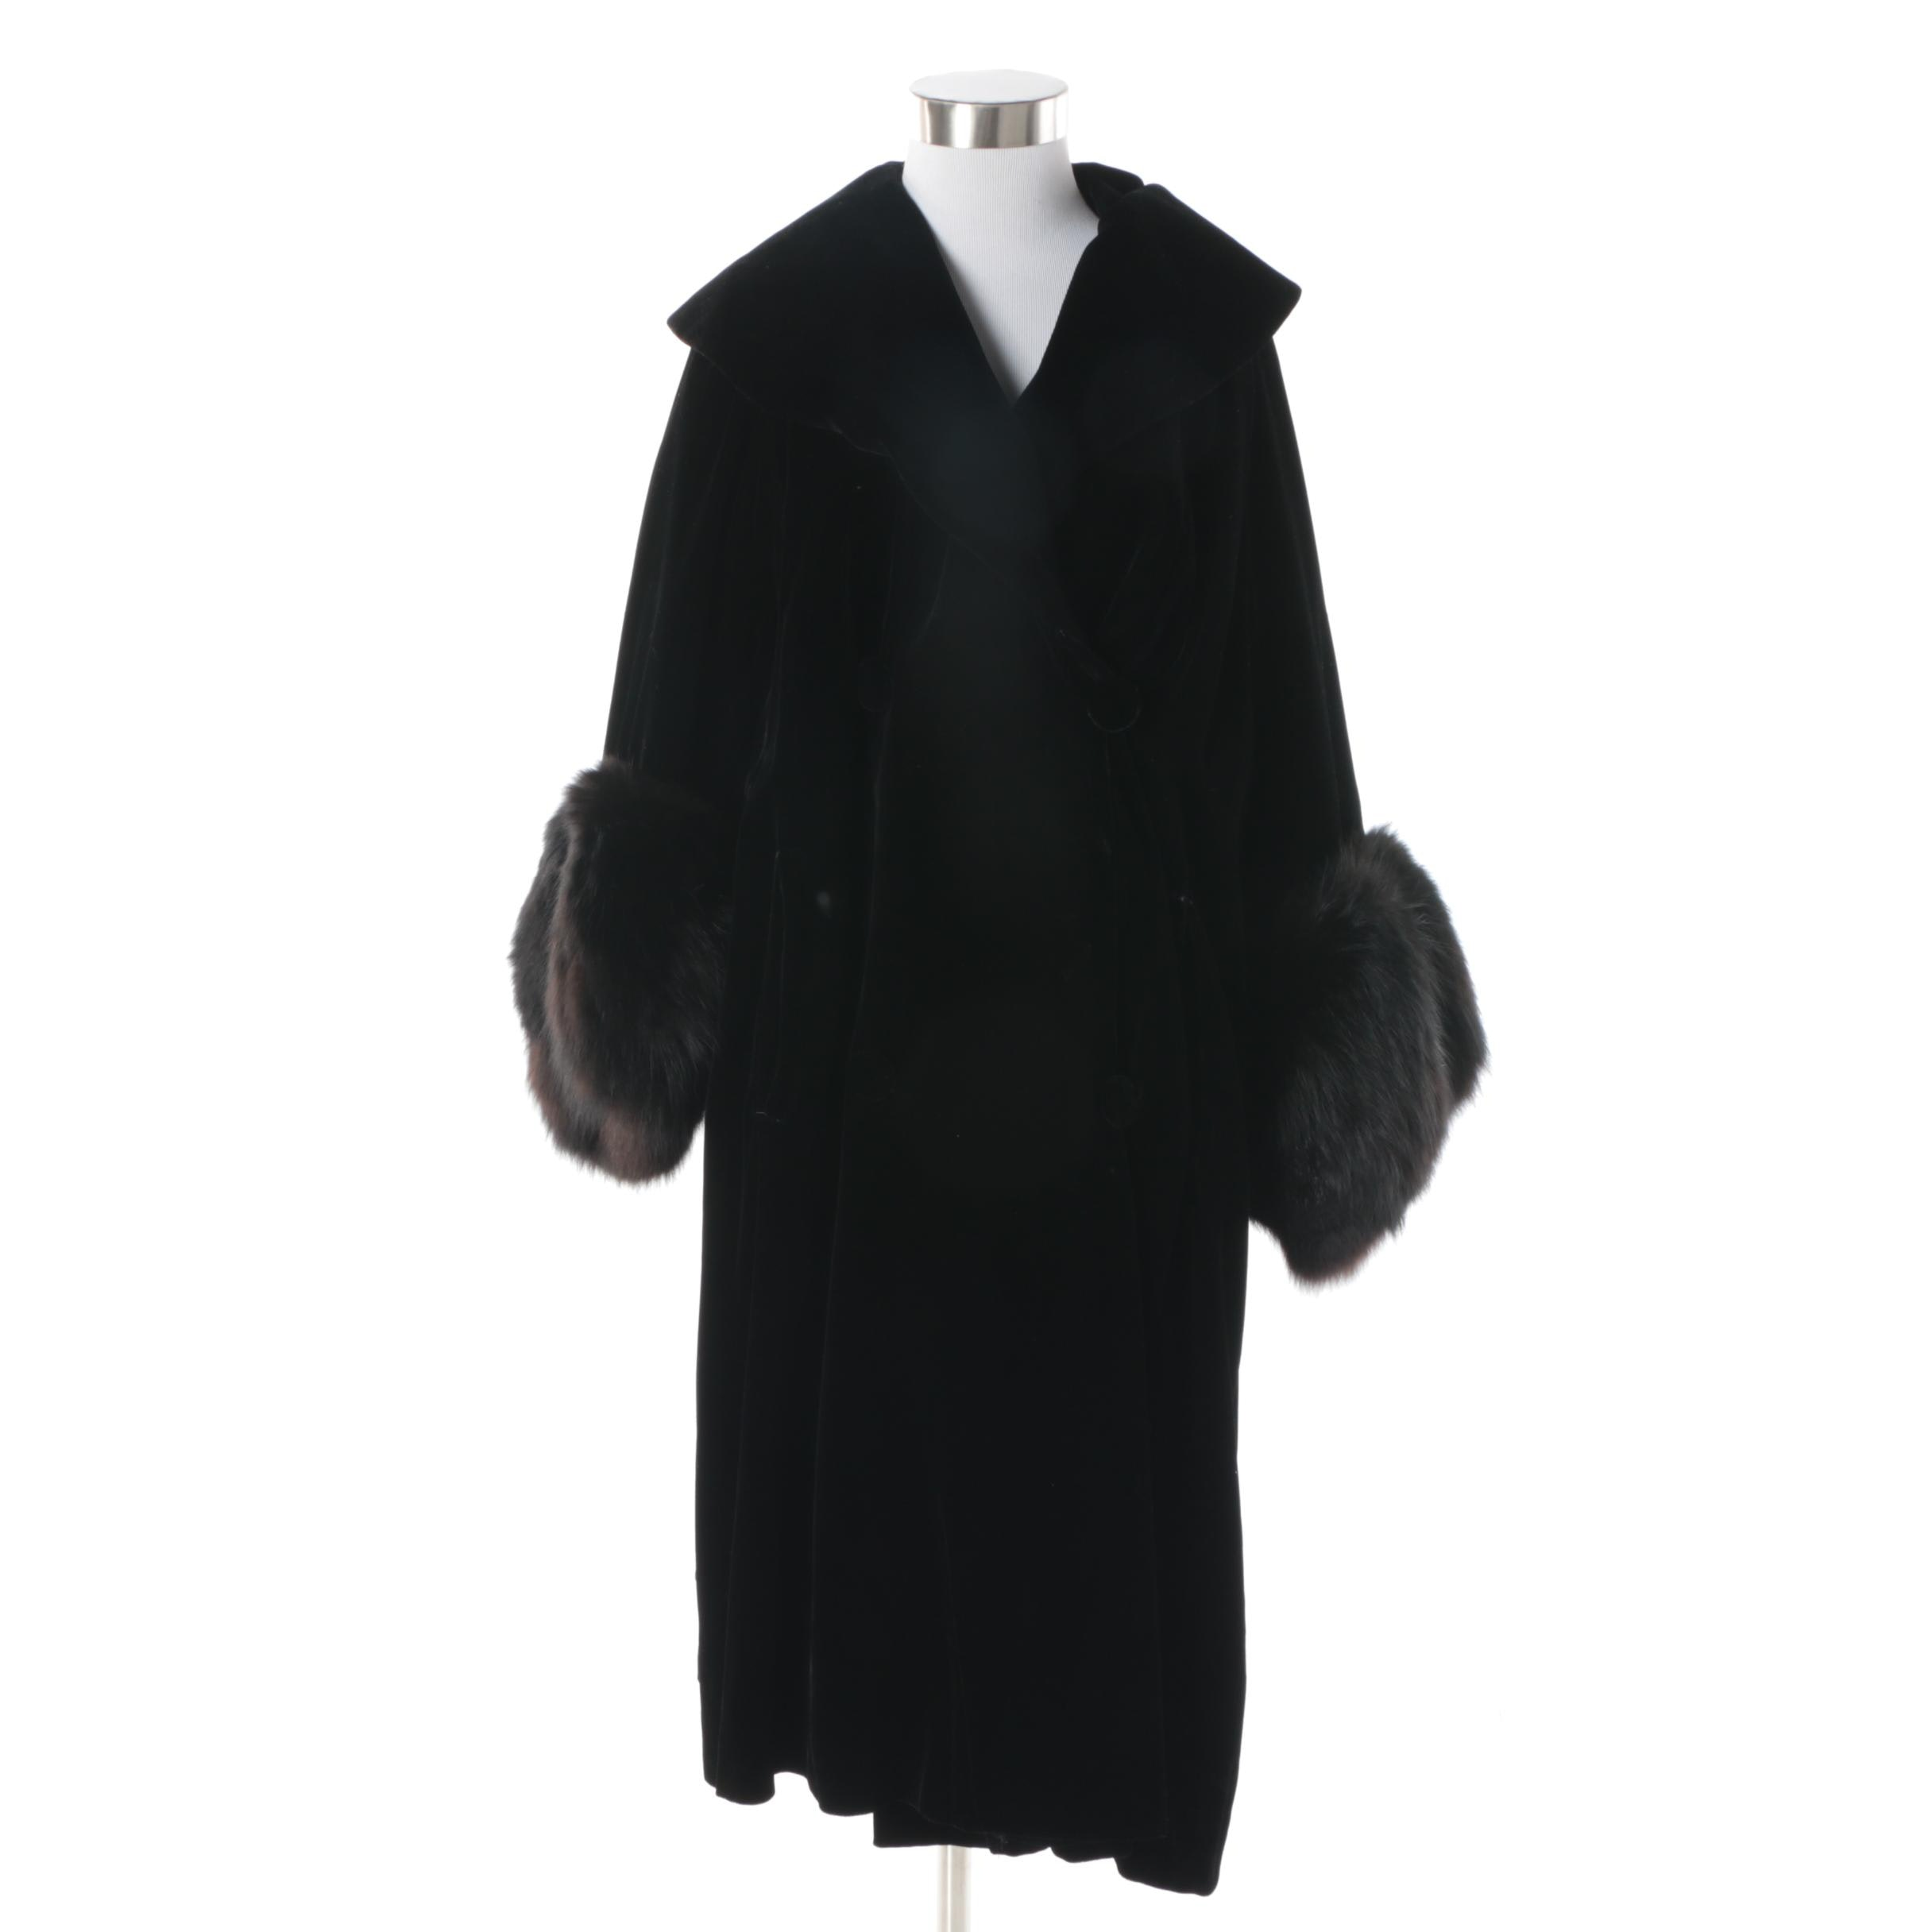 Vintage Black Velveteen Swing Coat with Fox Fur Cuffs